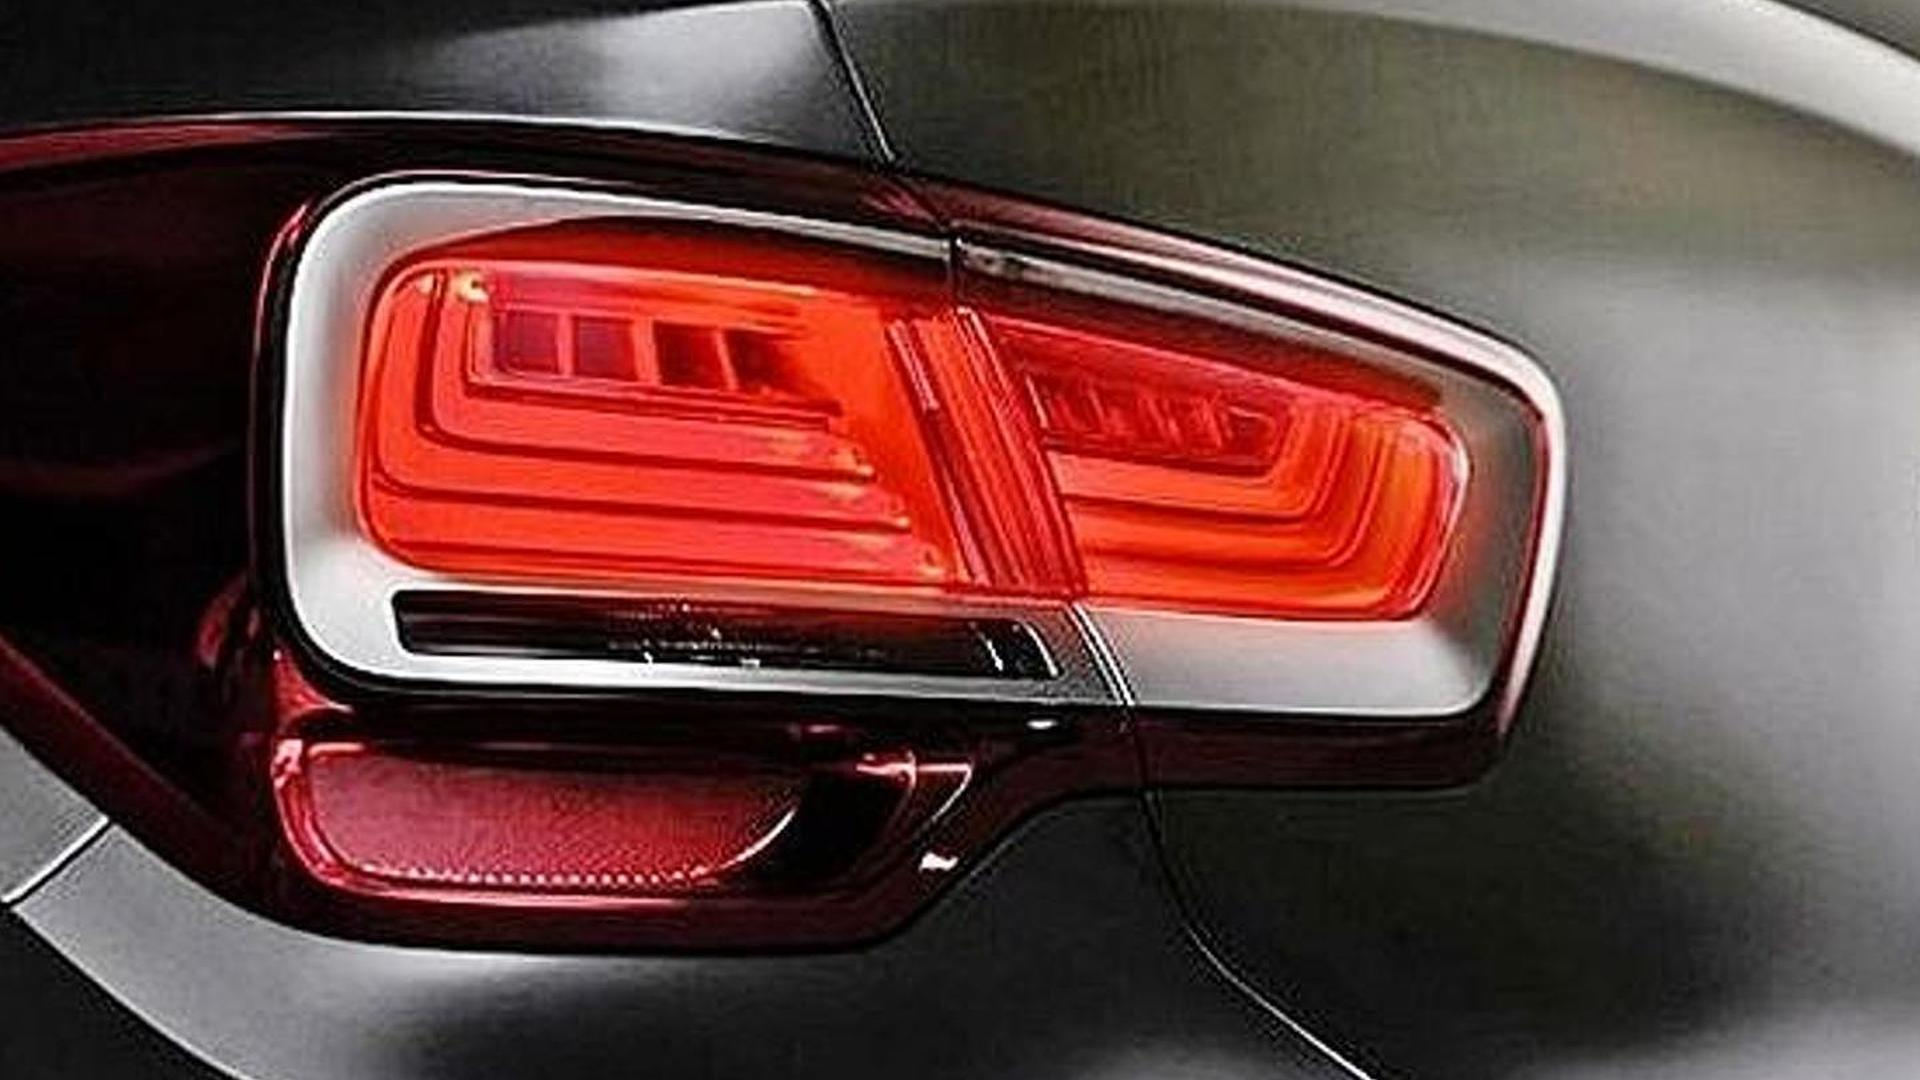 Citroen teases a new model for China, could be a DS4 sedan